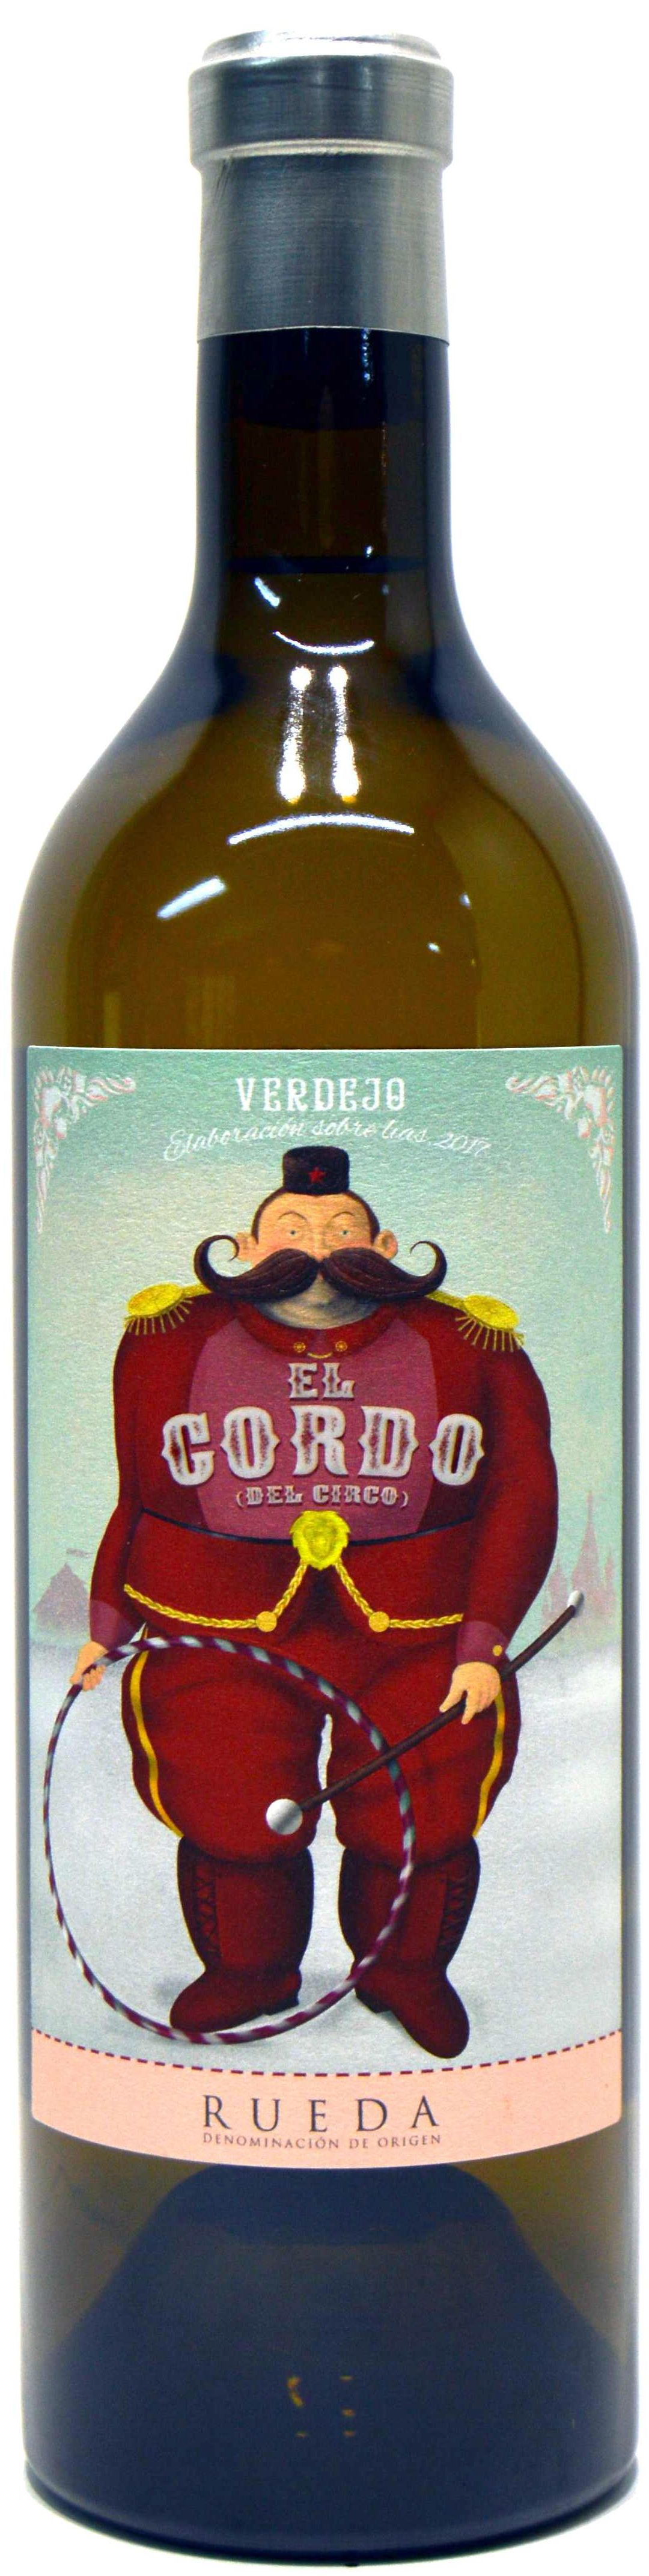 Casa Rojo, El Gordo Del Circo, 2017 (In 5 Btls Gift Box Set)